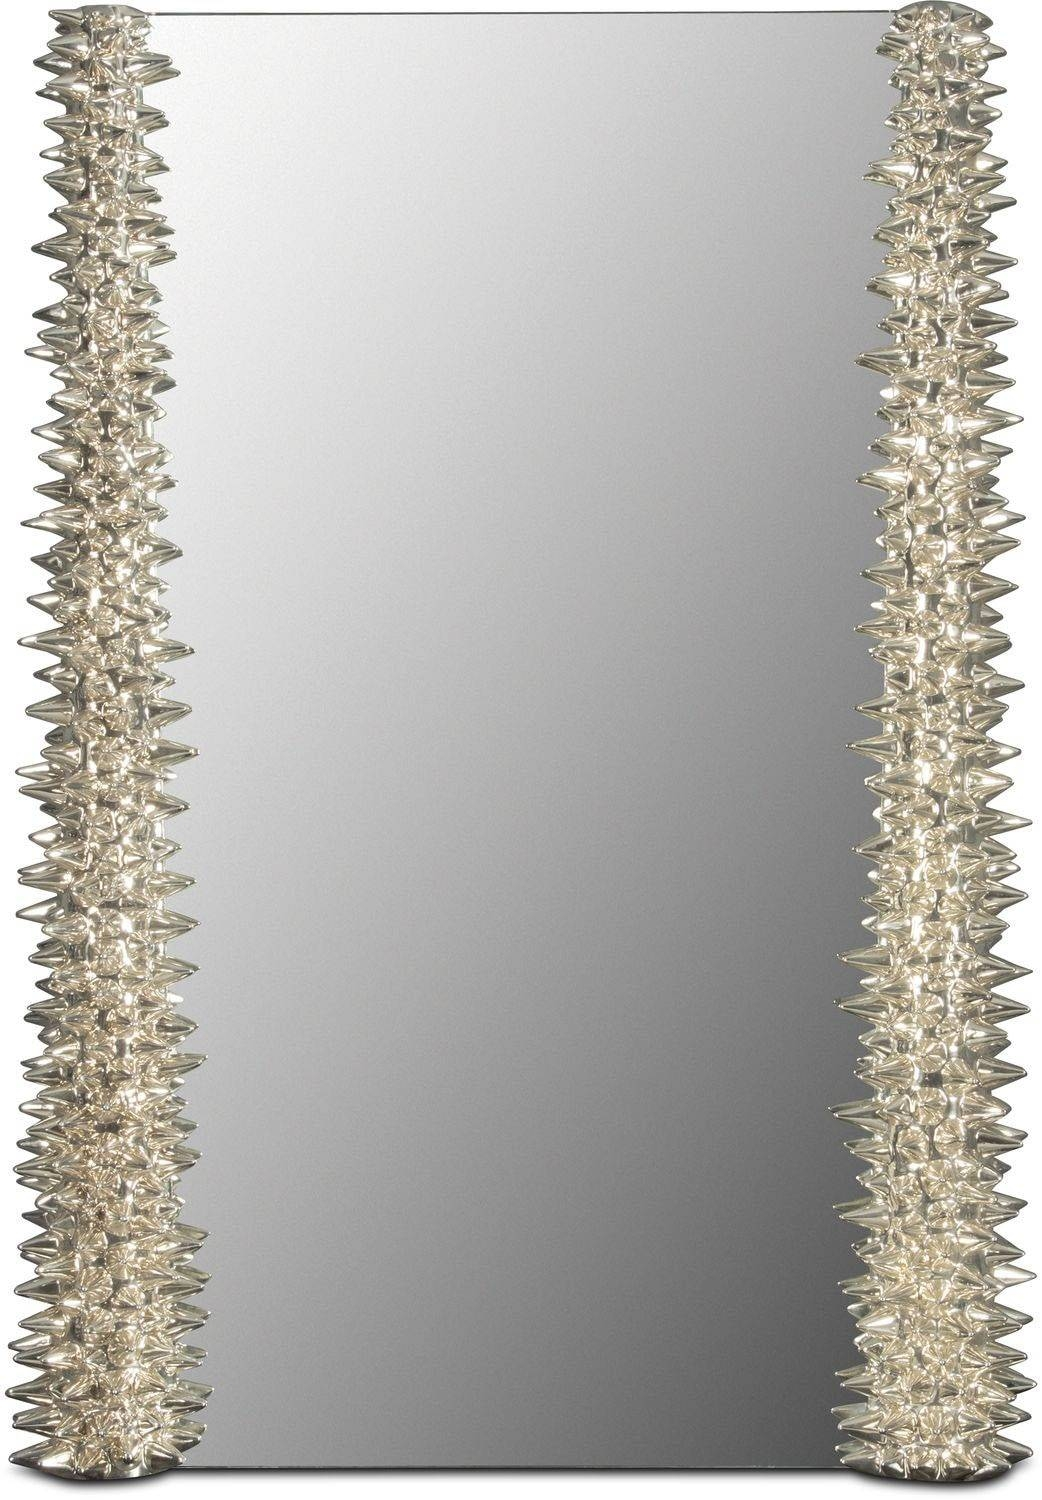 Wall & Floor Mirrors | Value City Furniture with Chrome Floor Mirrors (Image 25 of 25)